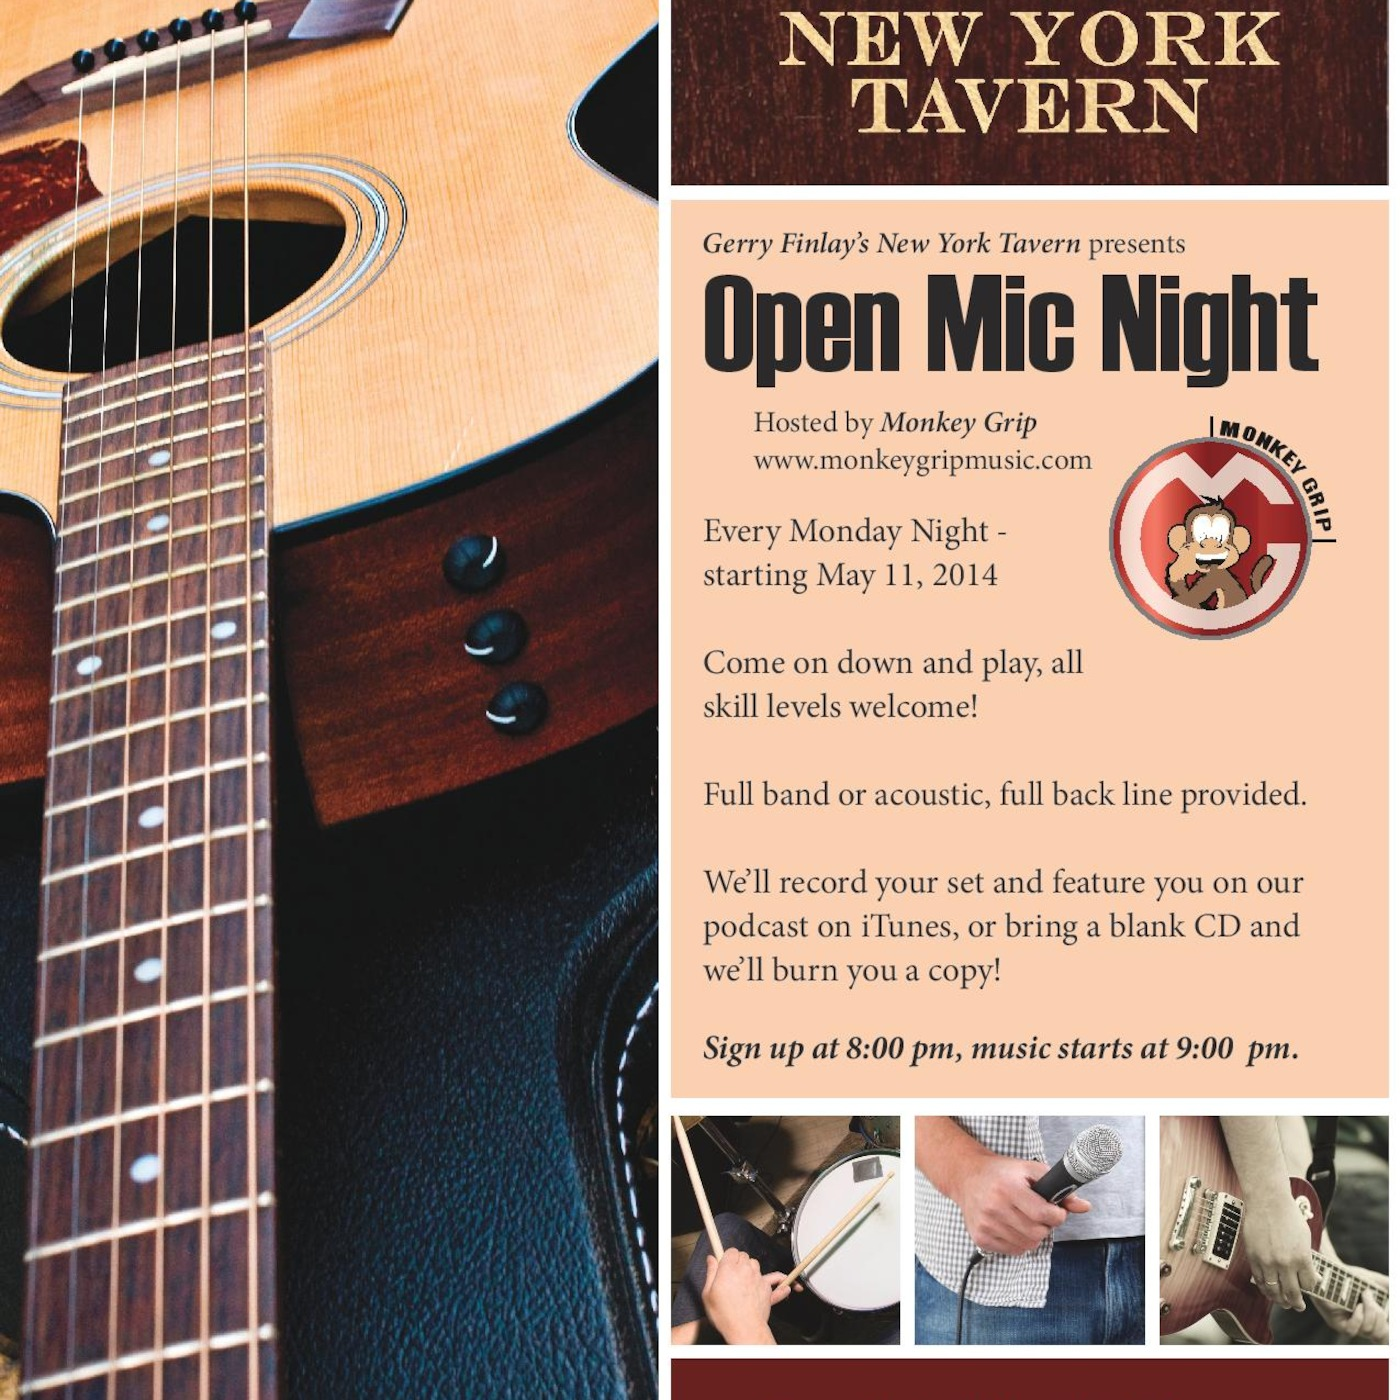 Gerry Finlay's New York Tavern Open Mic Night